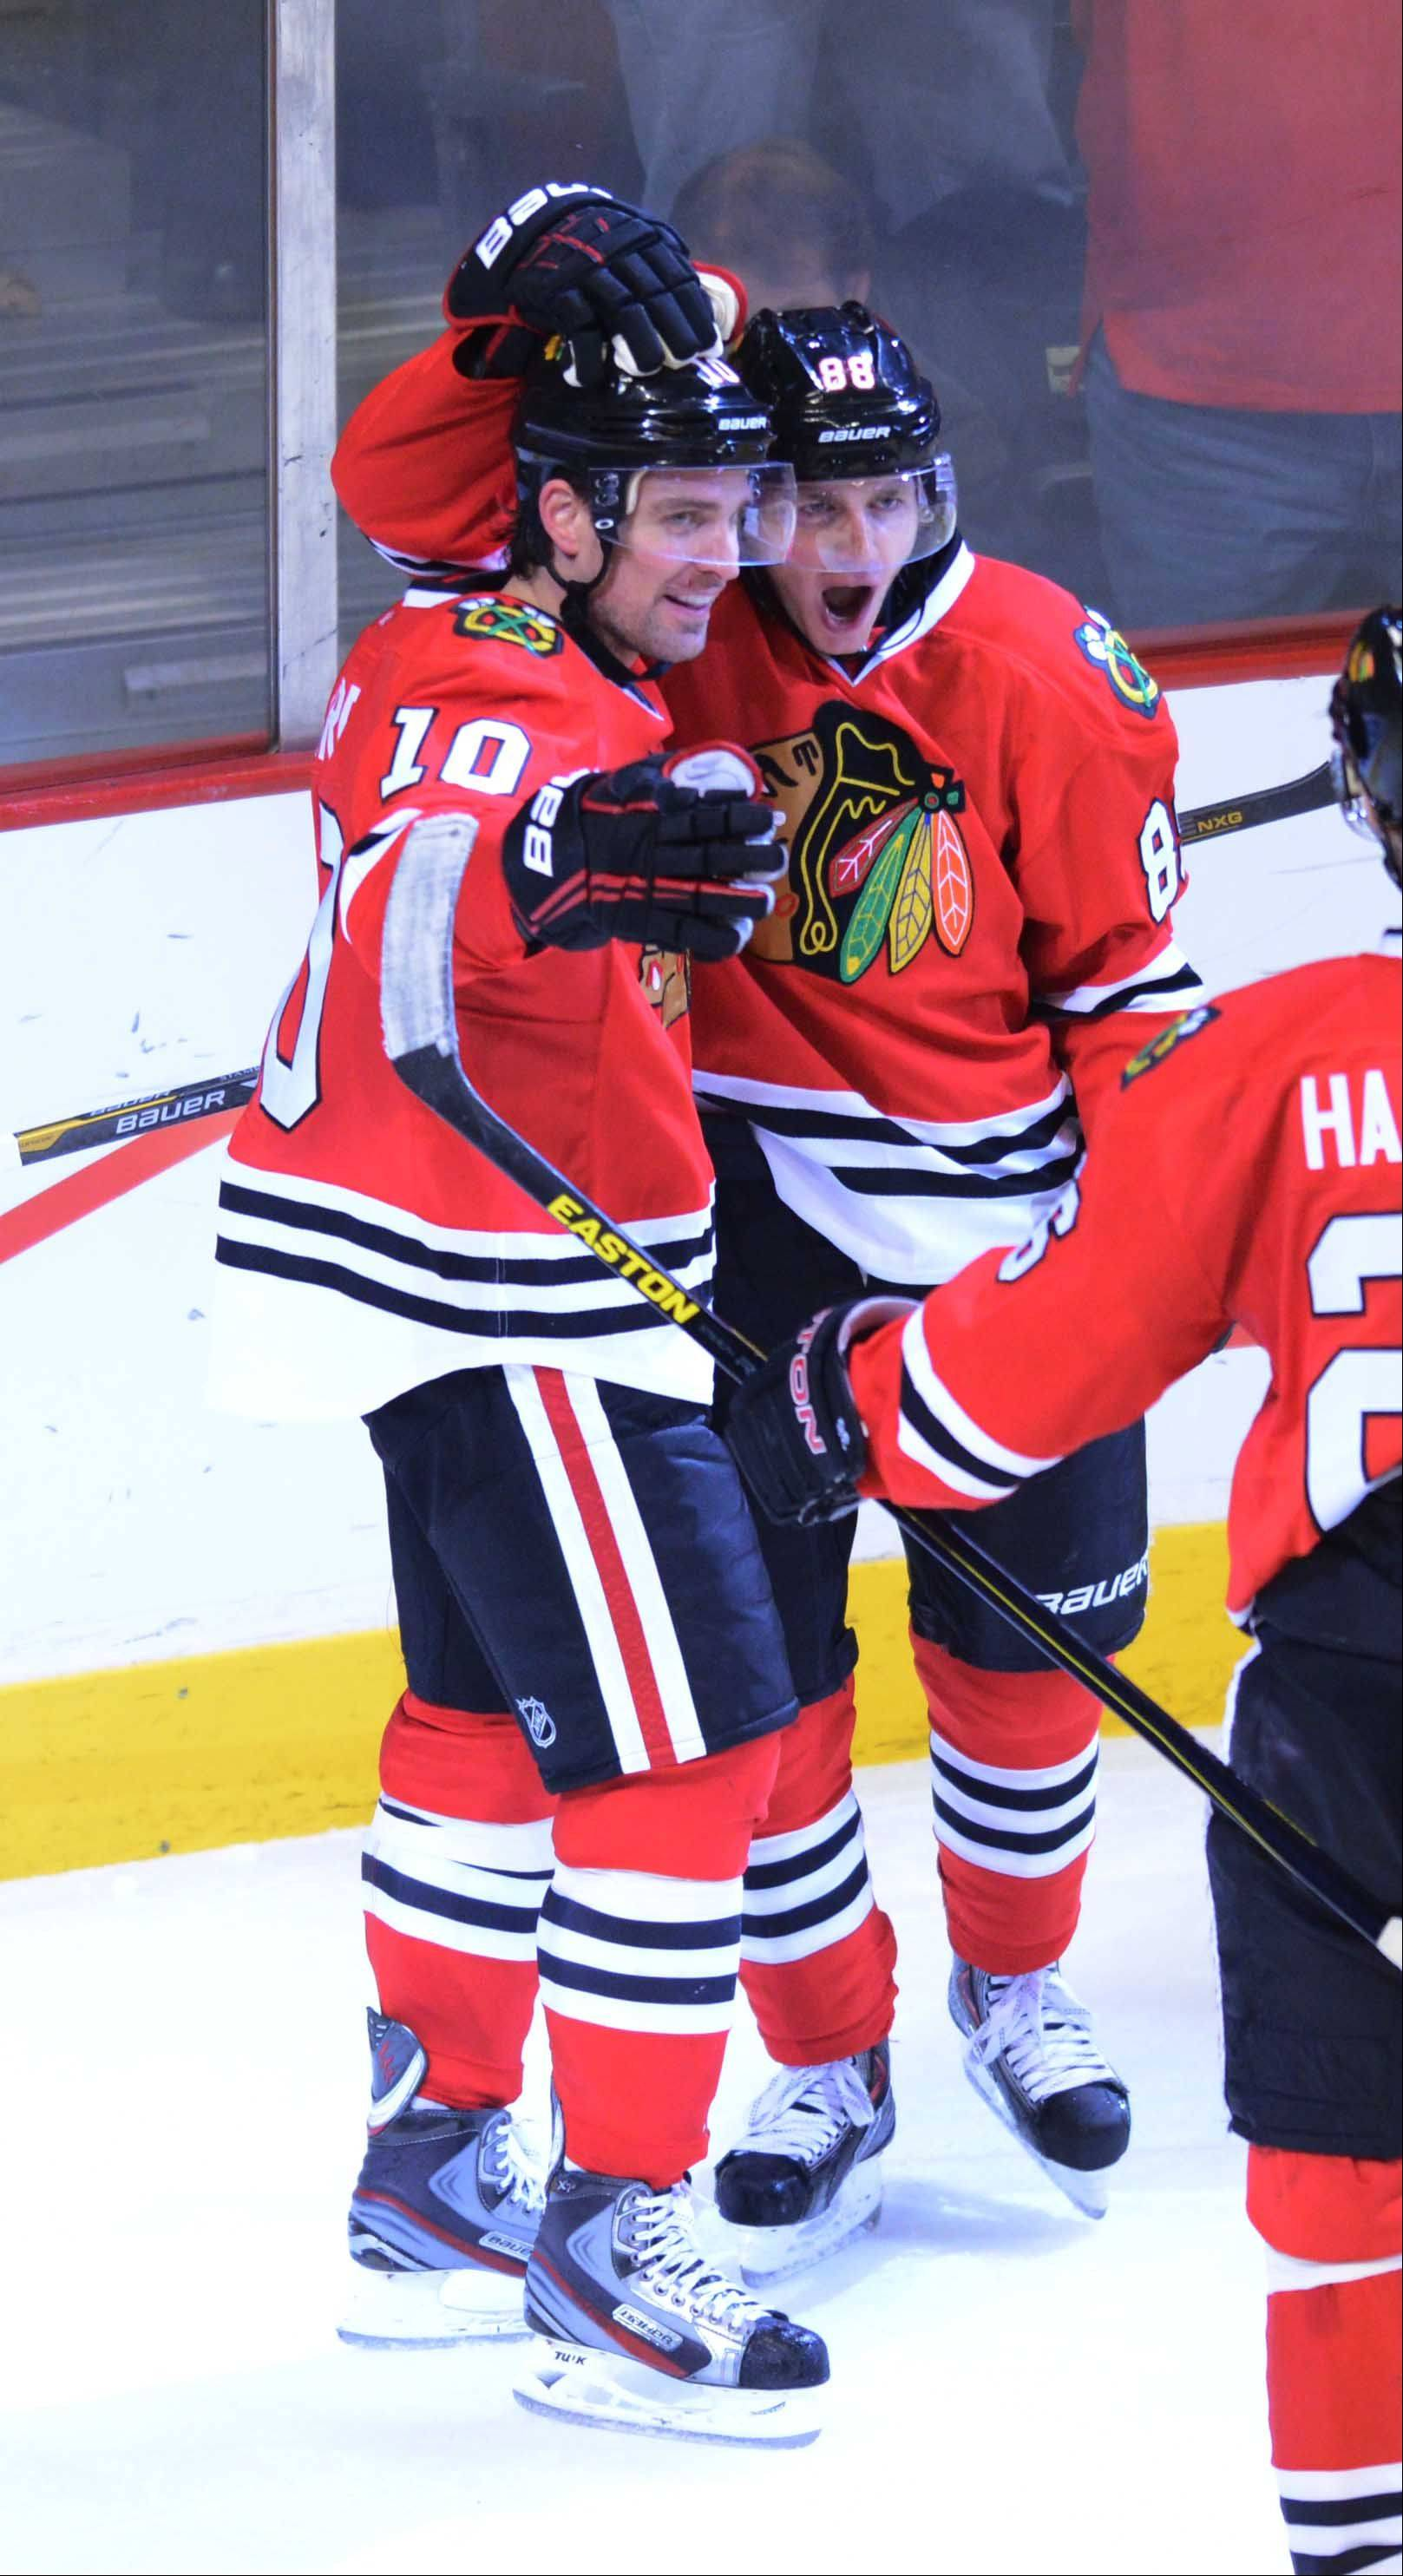 Patrick Sharp,left, and Patrick Kane celebrate a Hawks goal late in the third period. This took place during the Western Conference first-round NHL playoff series between the Chicago Blackhawks and the Minnesota Wild on Friday night at the United Center in Chicago.